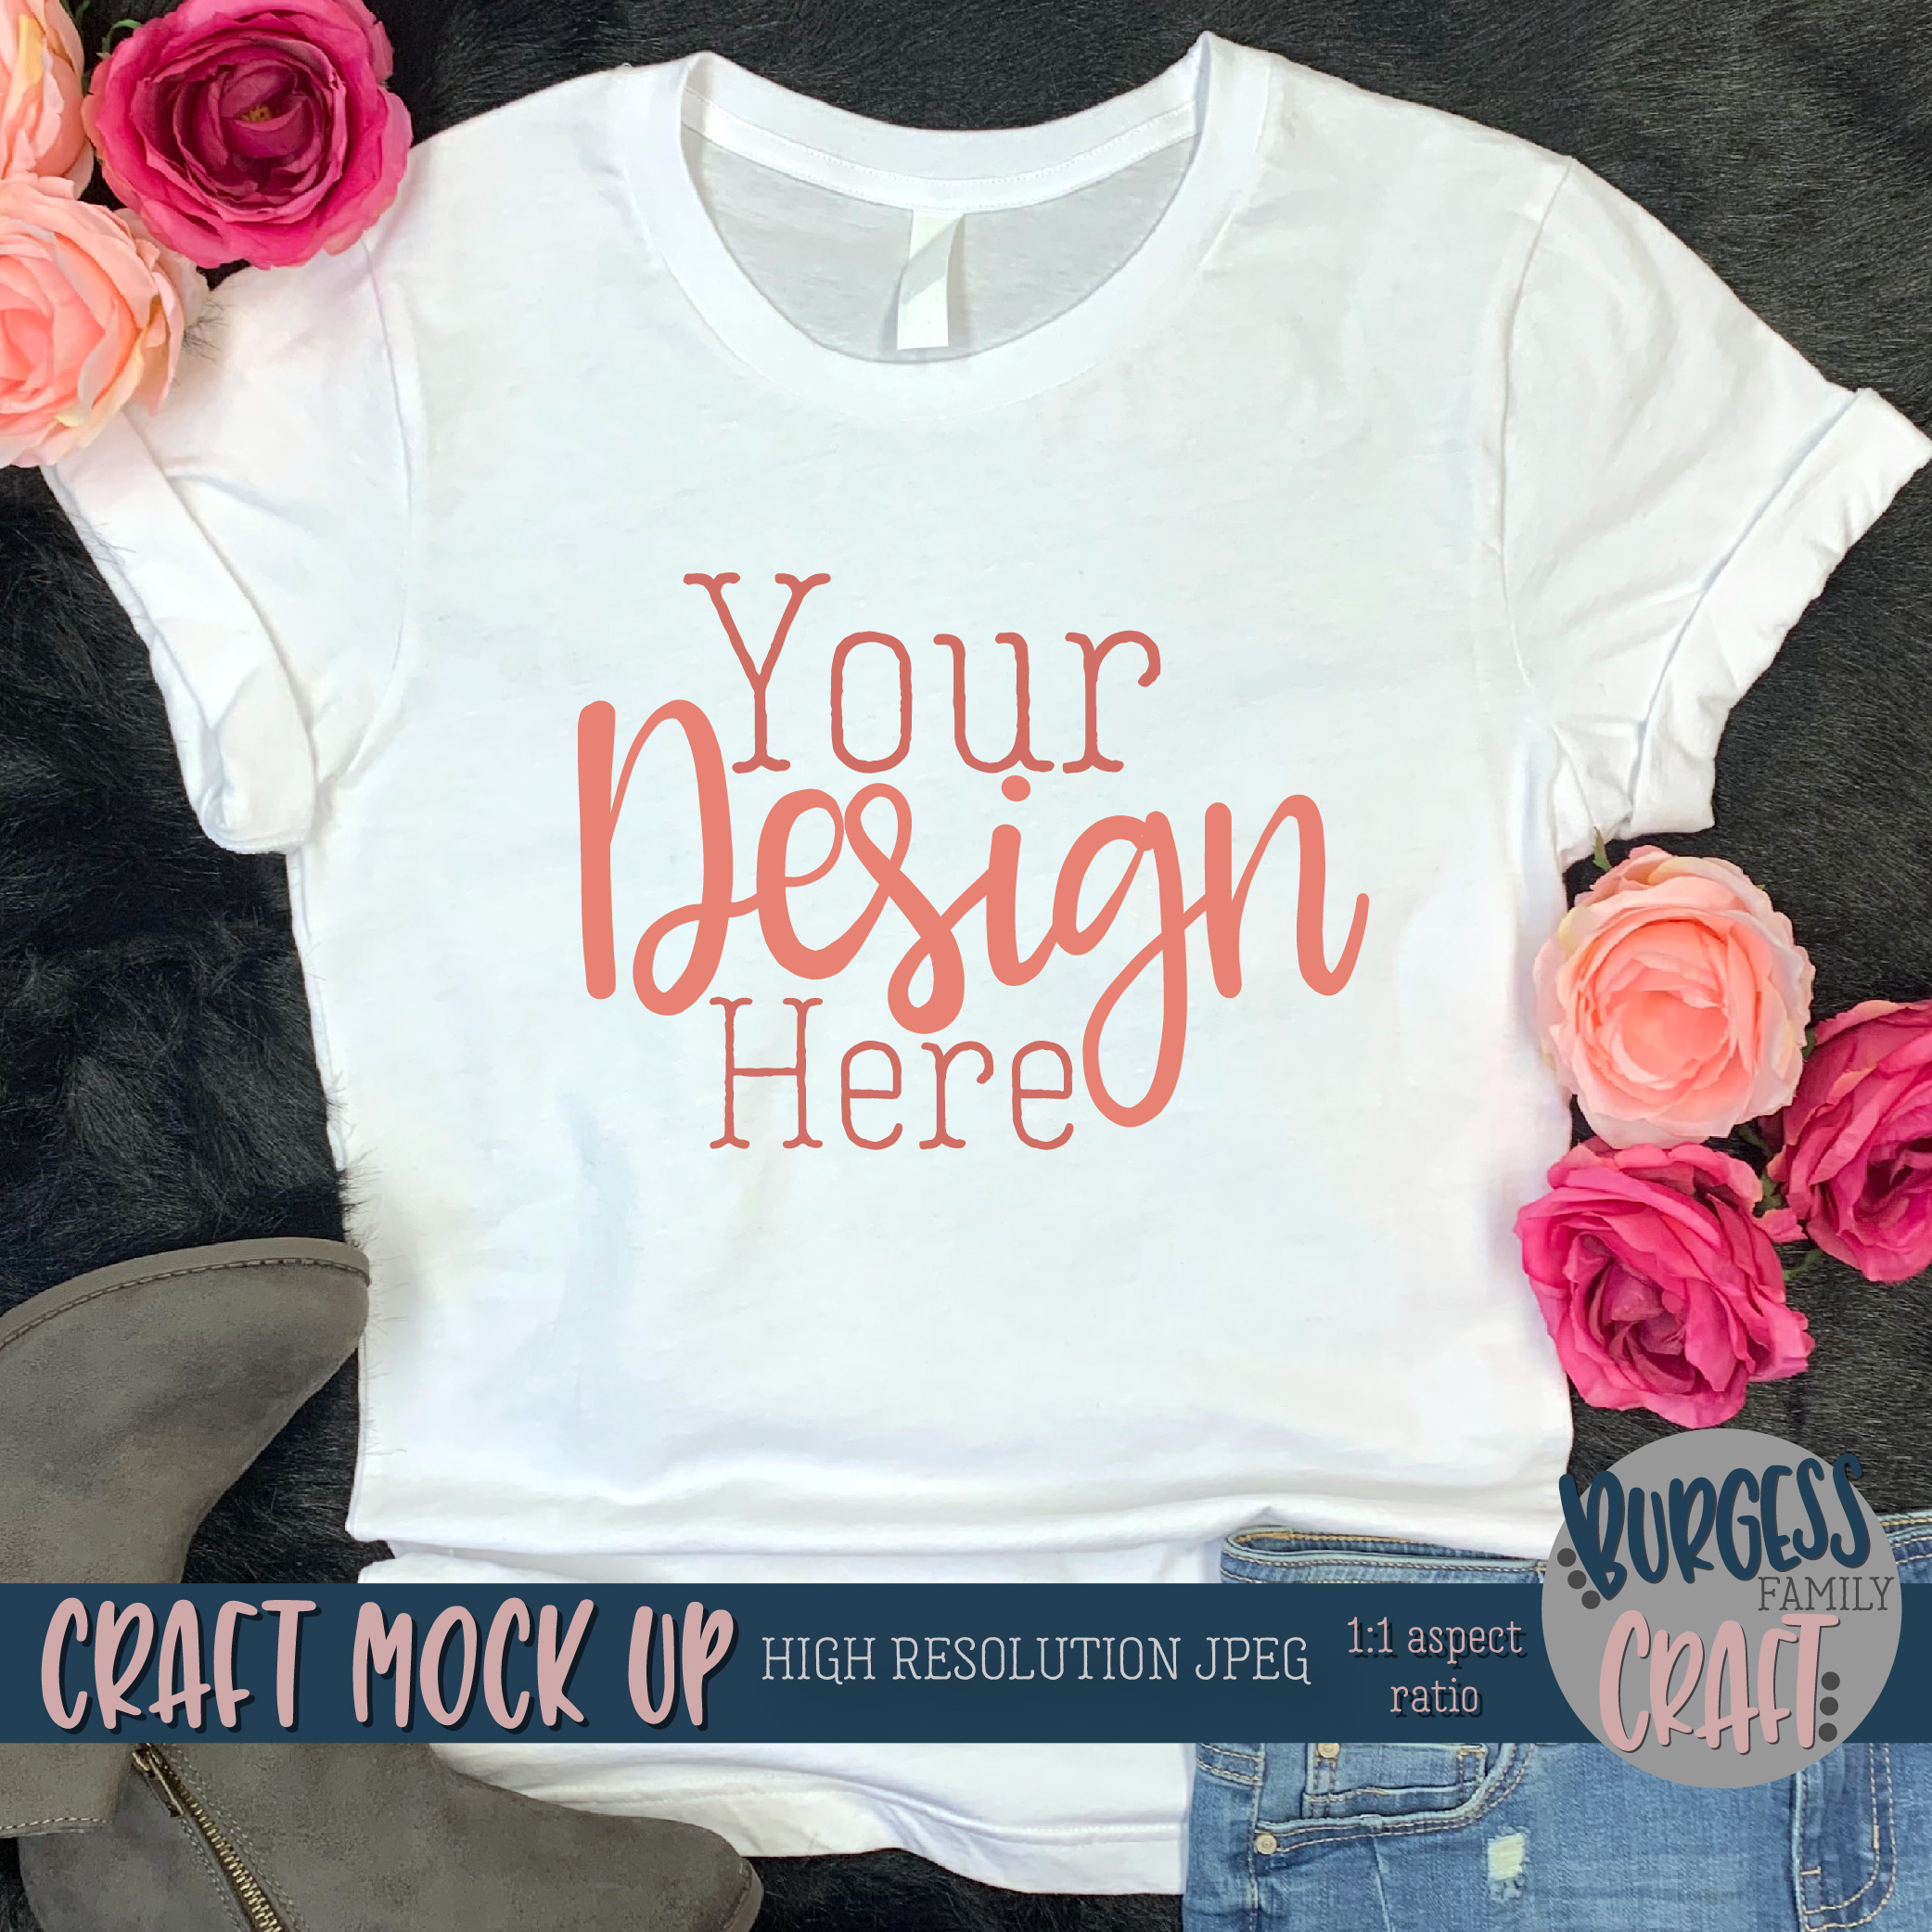 Pretty womens shirt Craft mock up | High Resolution JPEG example image 2